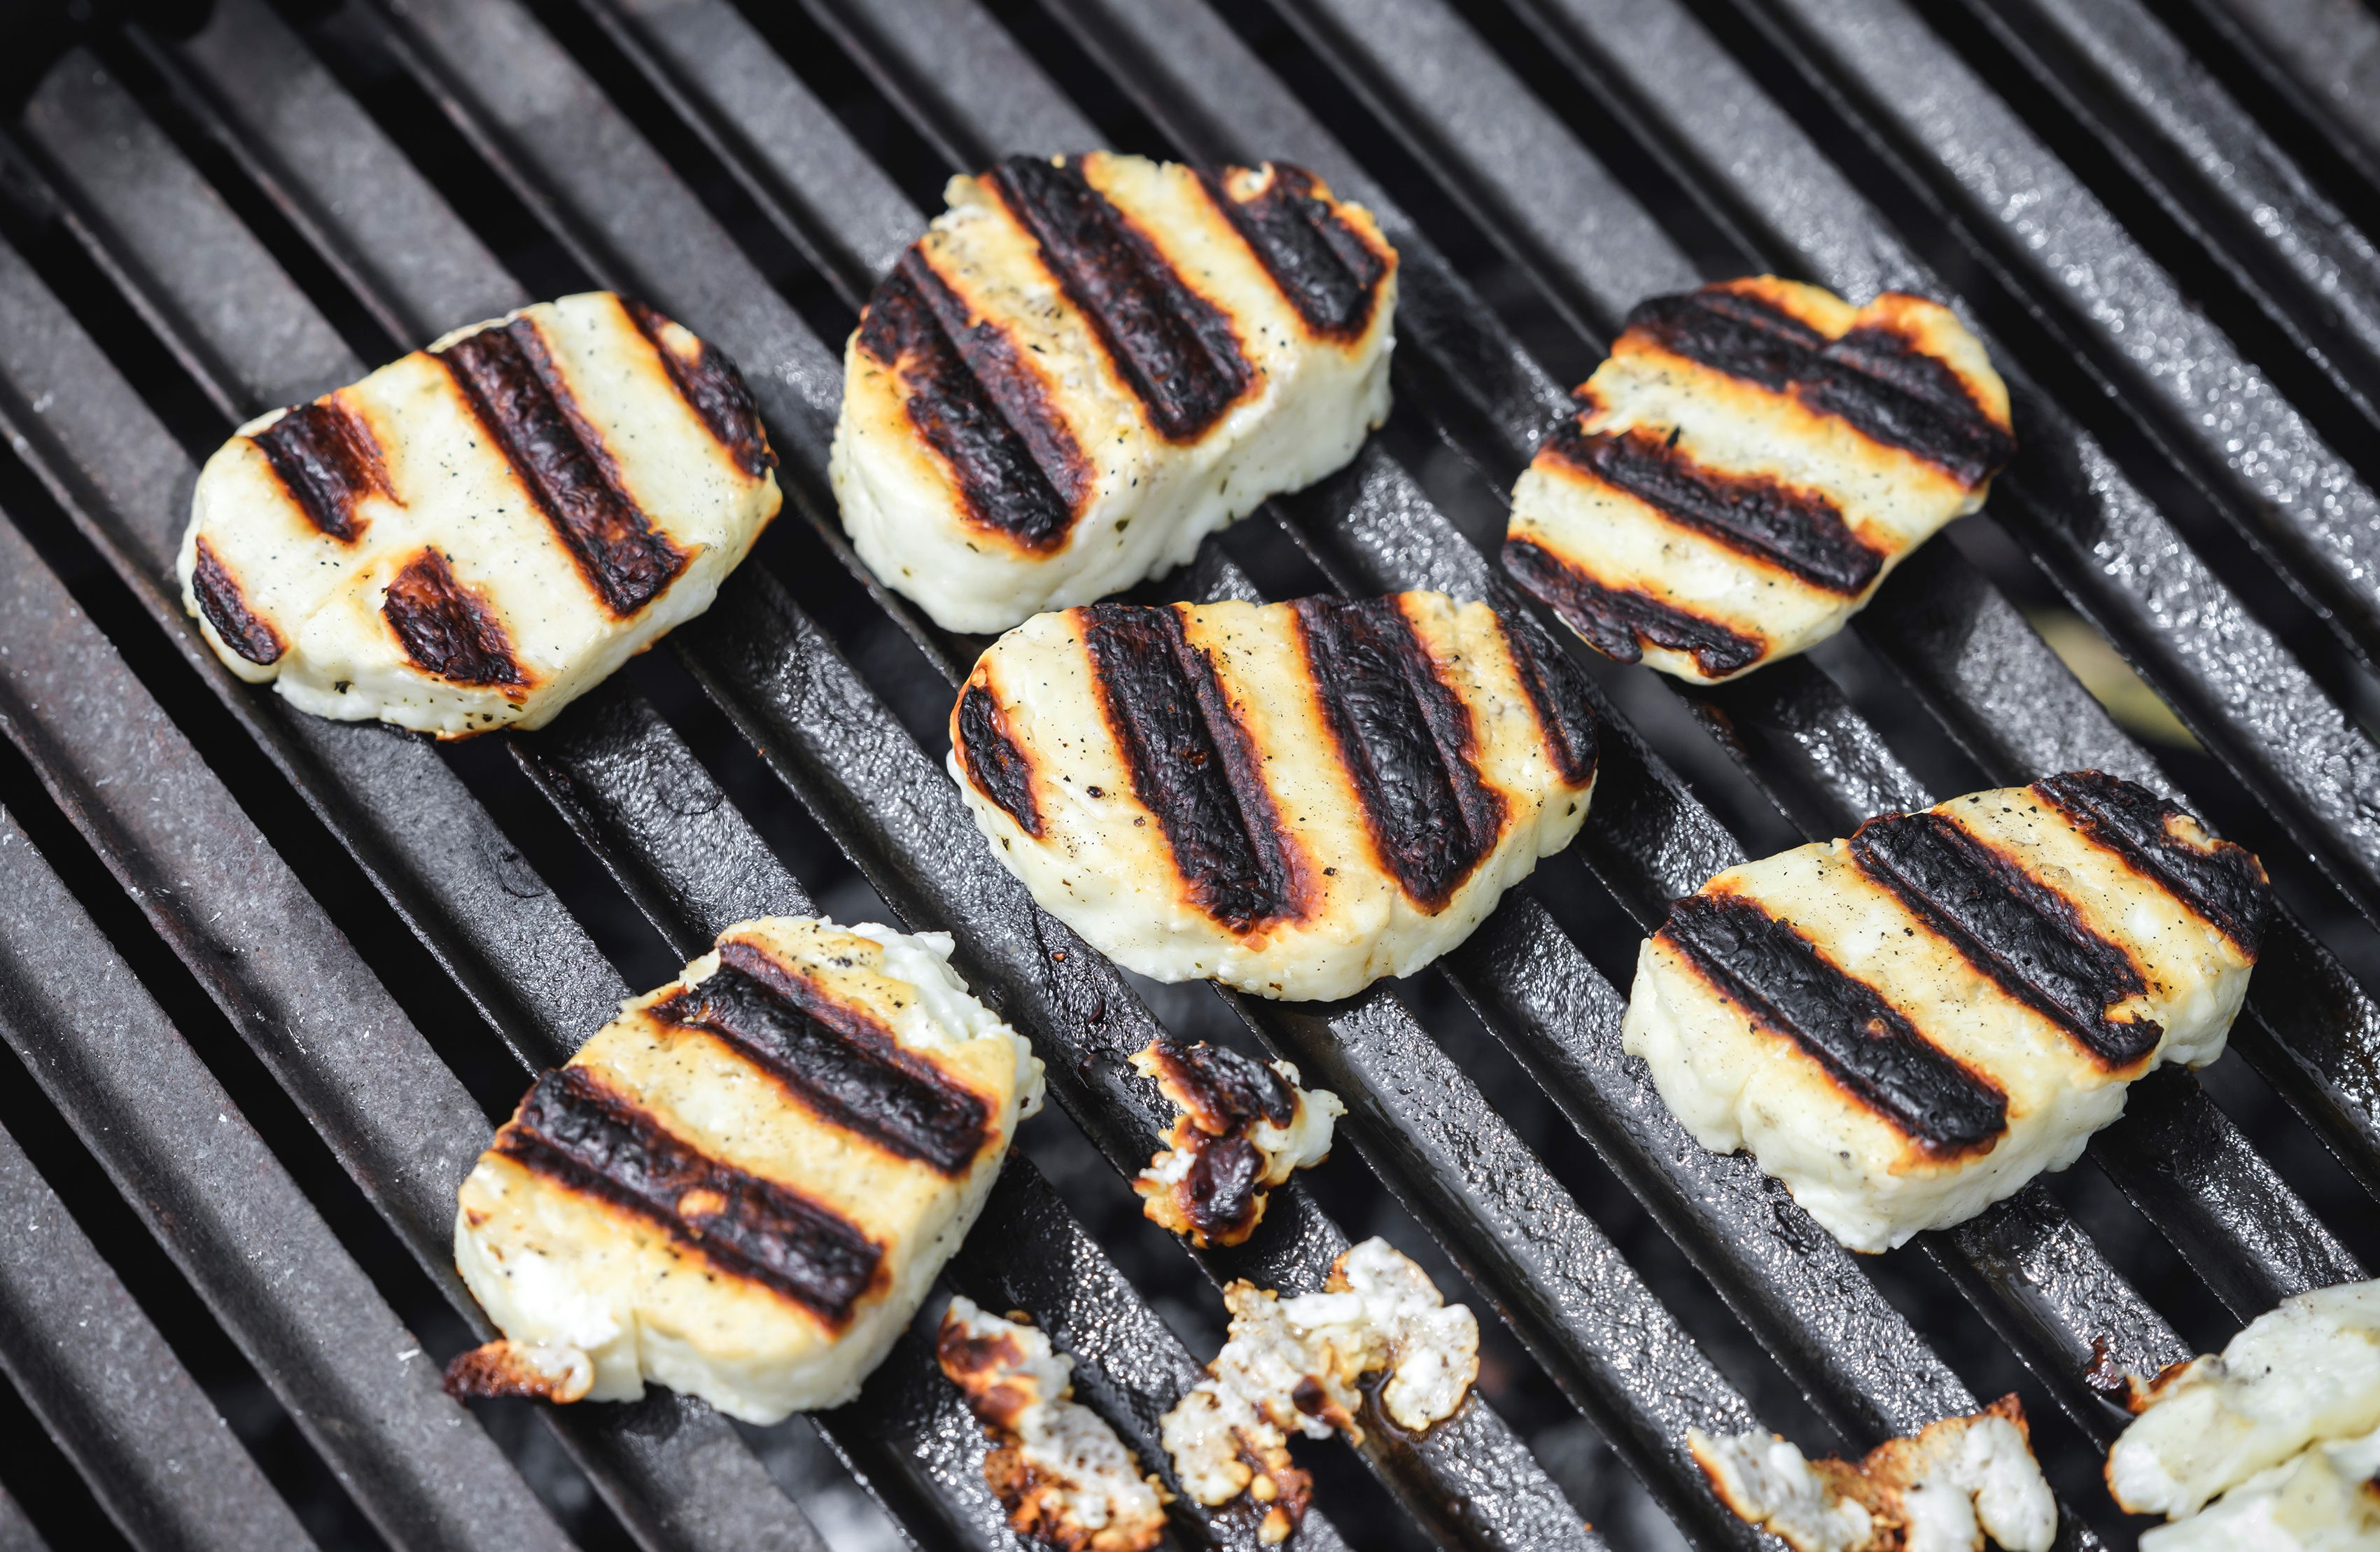 Halloumi Cheese on the grill